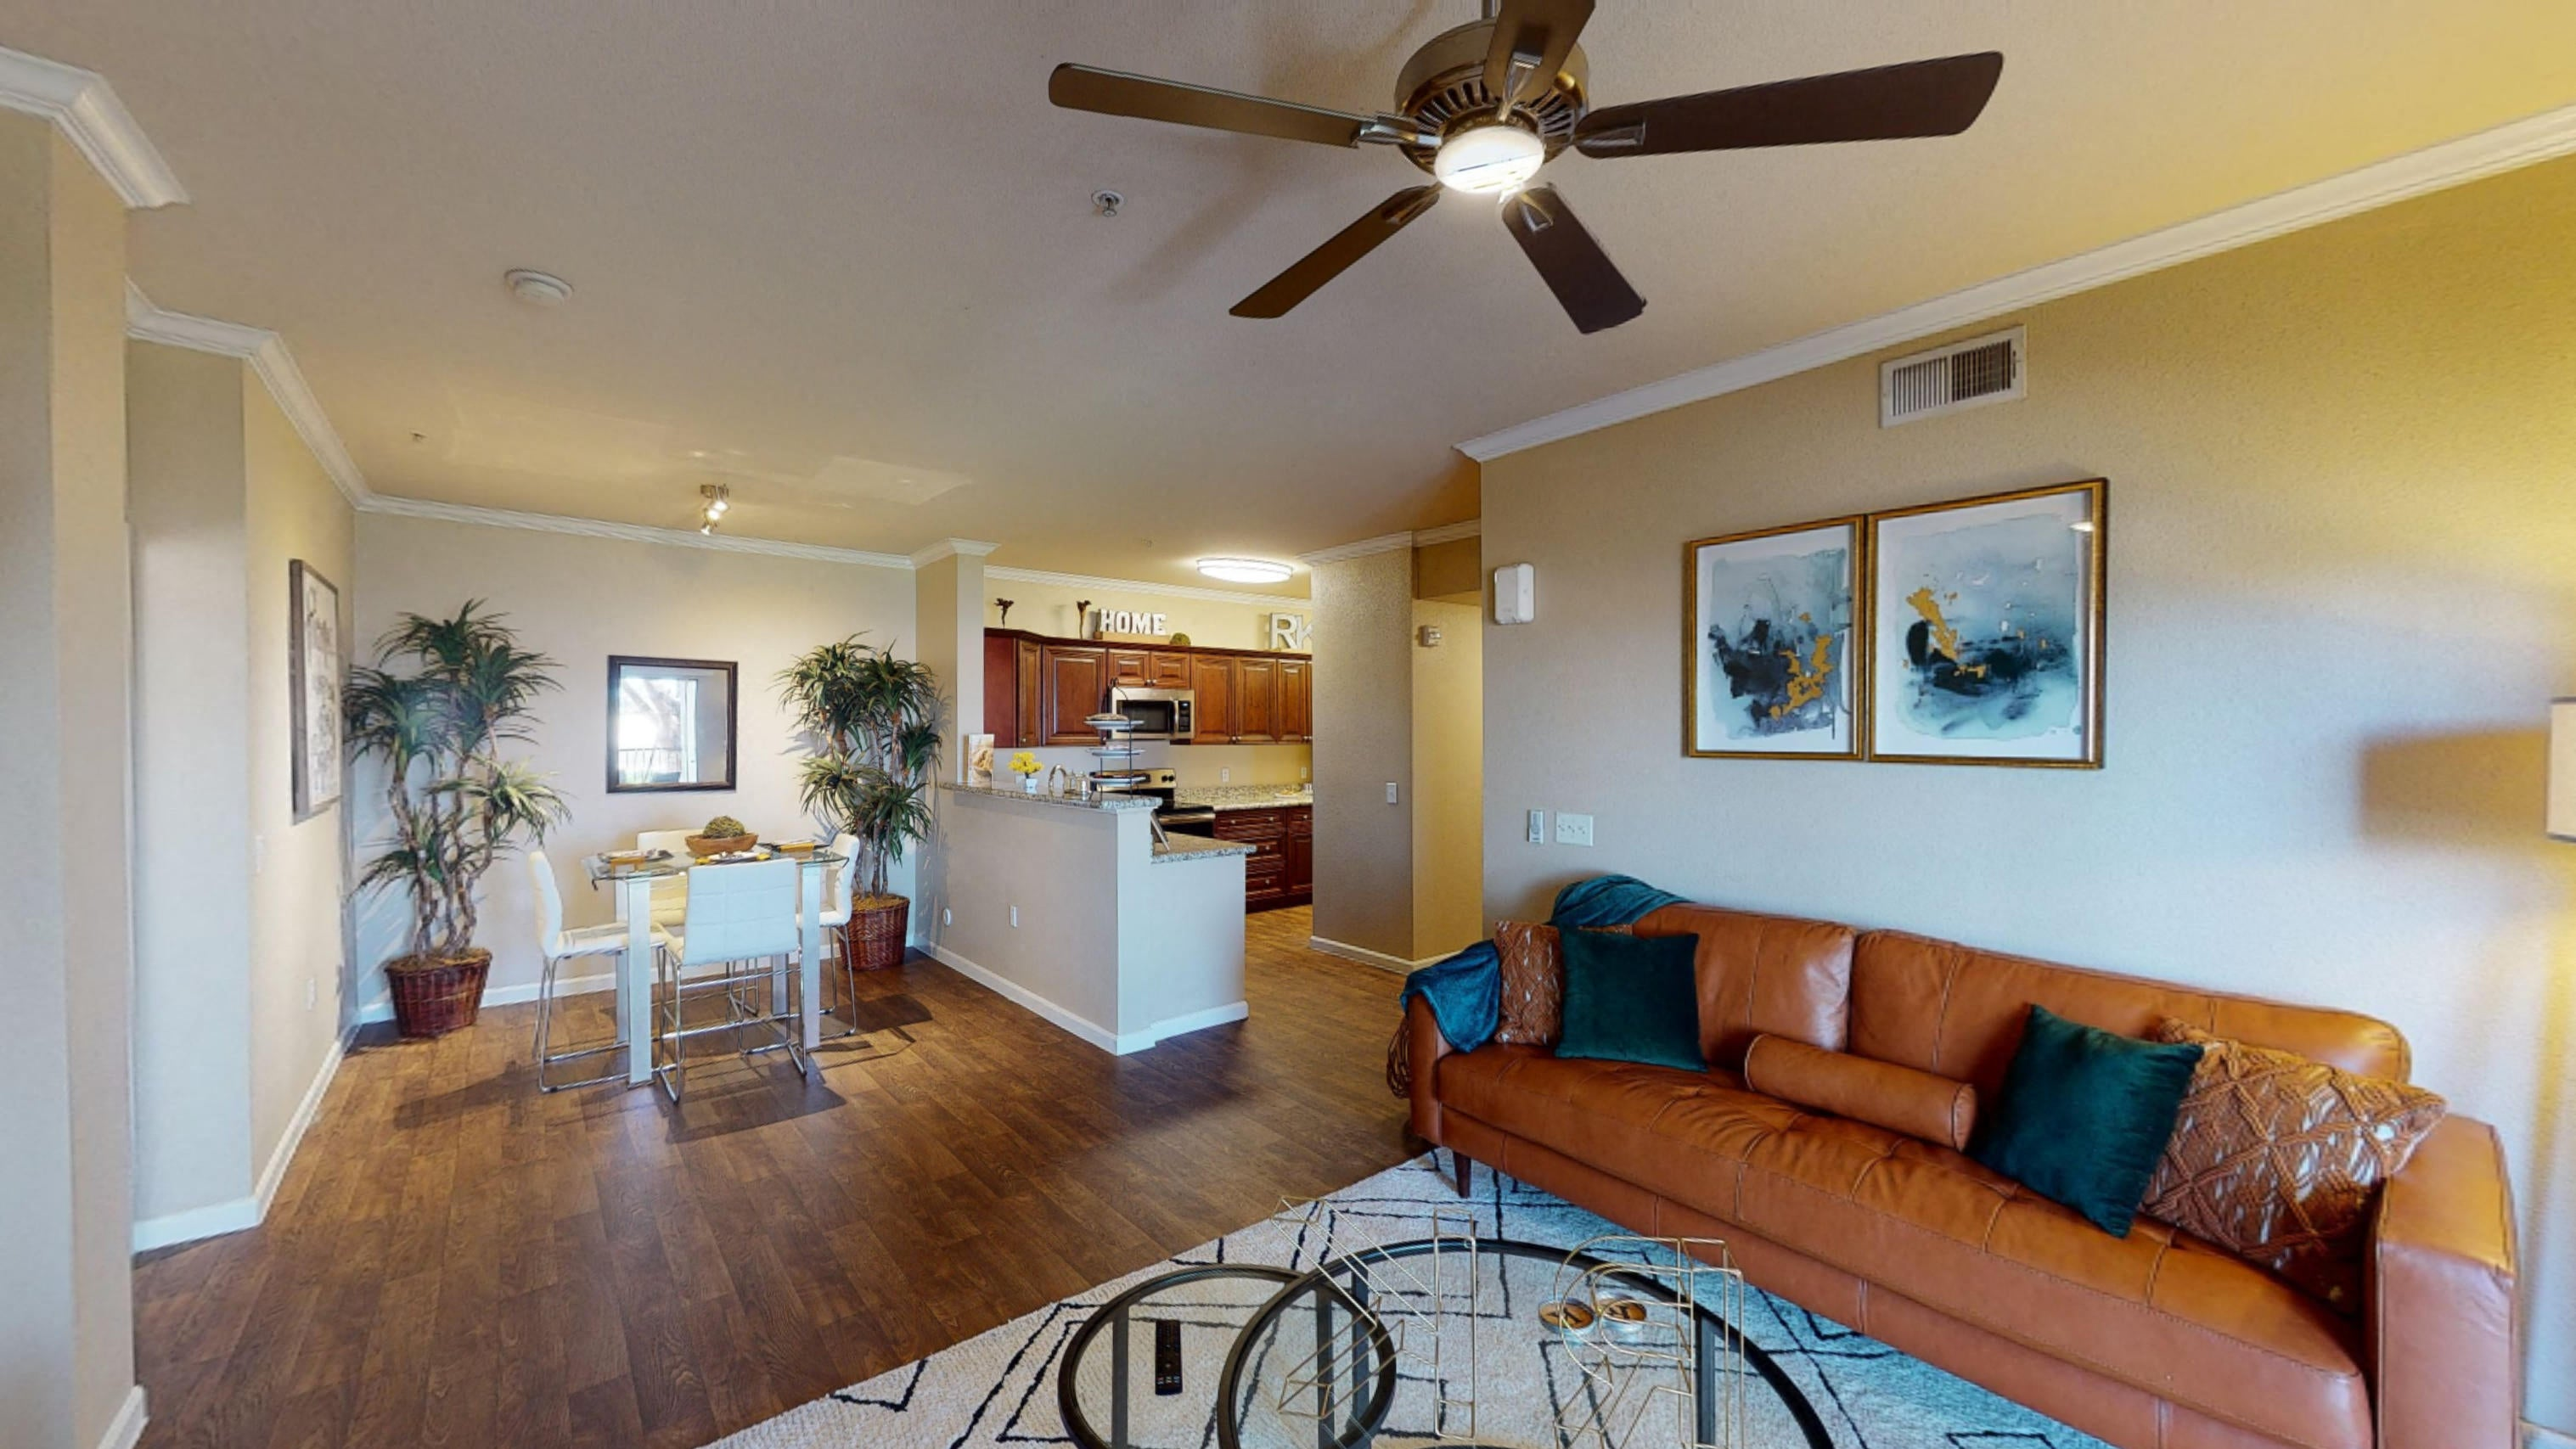 Comfortable Living Room at Painted Trails, Gilbert Arizona